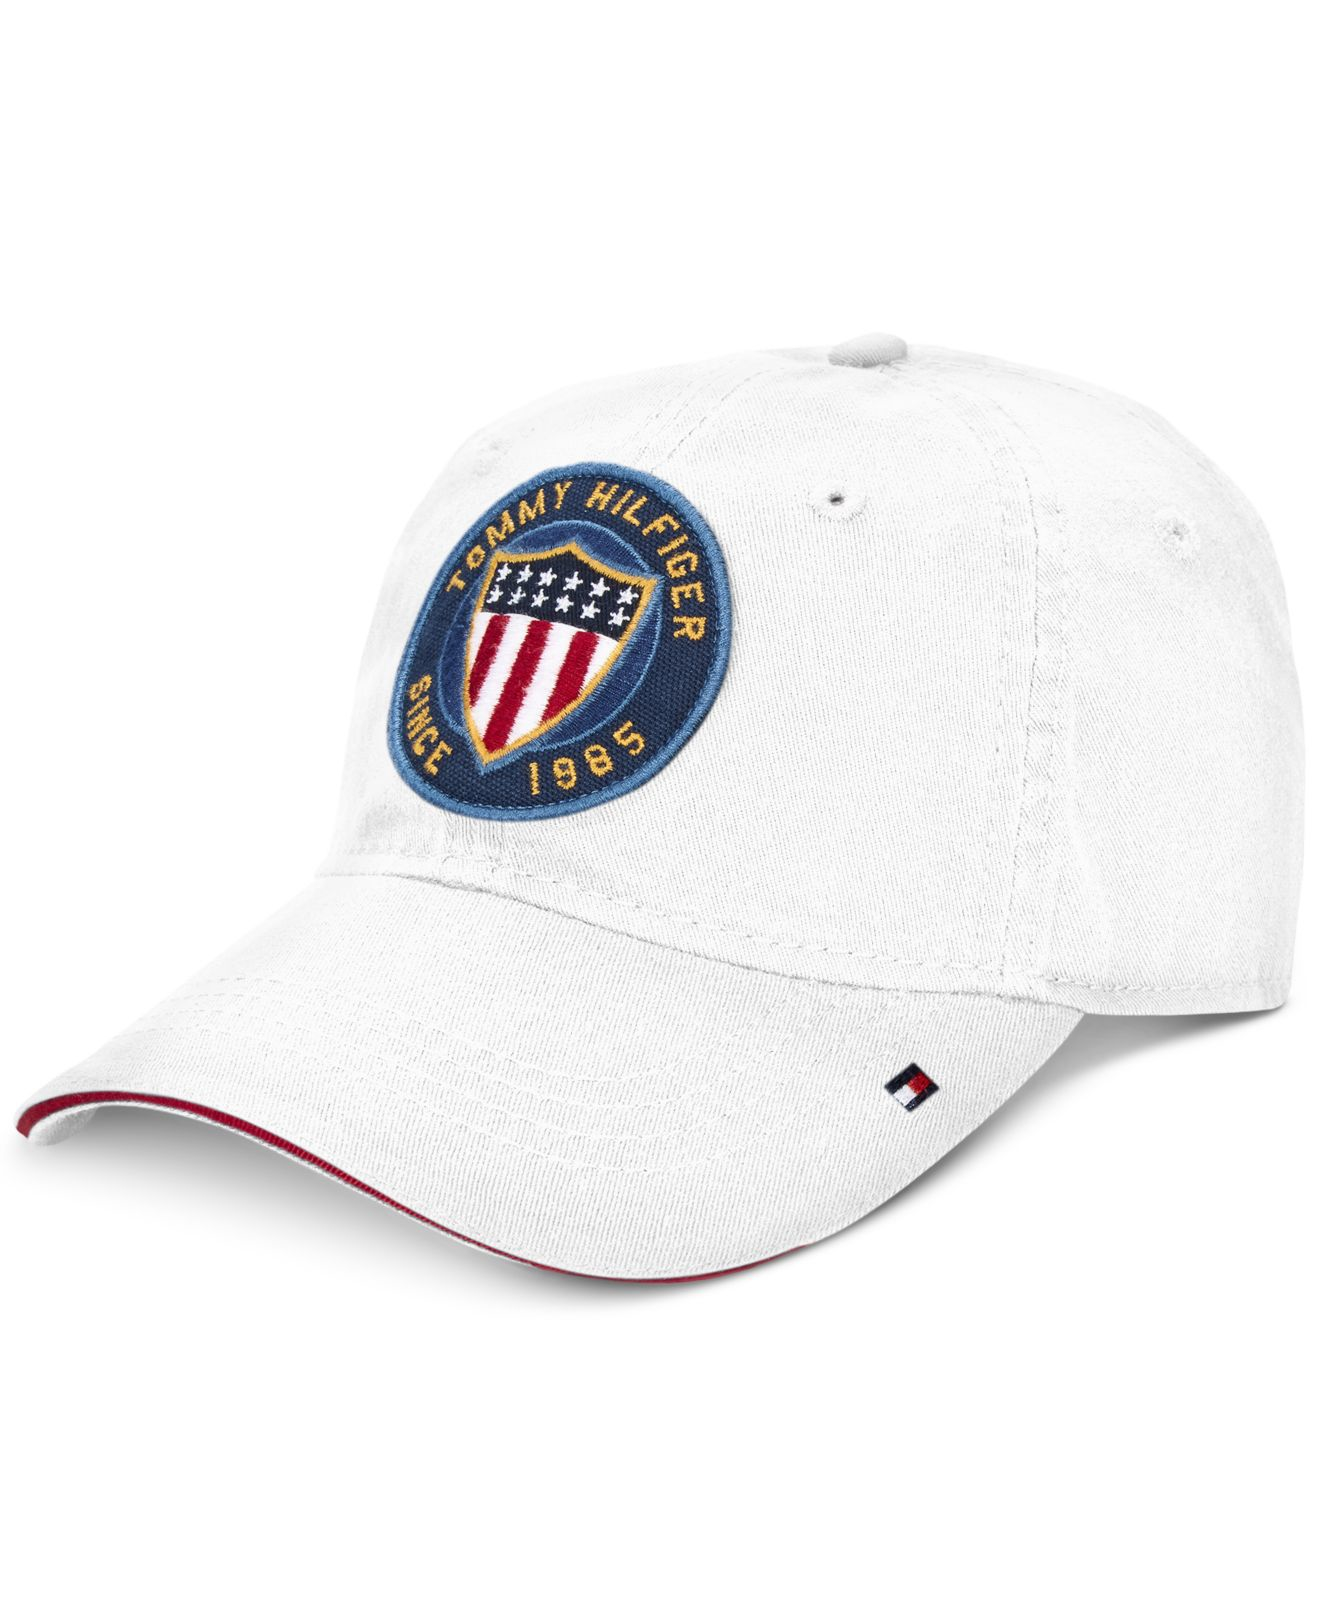 fdc67f5233e Lyst - Tommy Hilfiger Country Cap Usa in White for Men